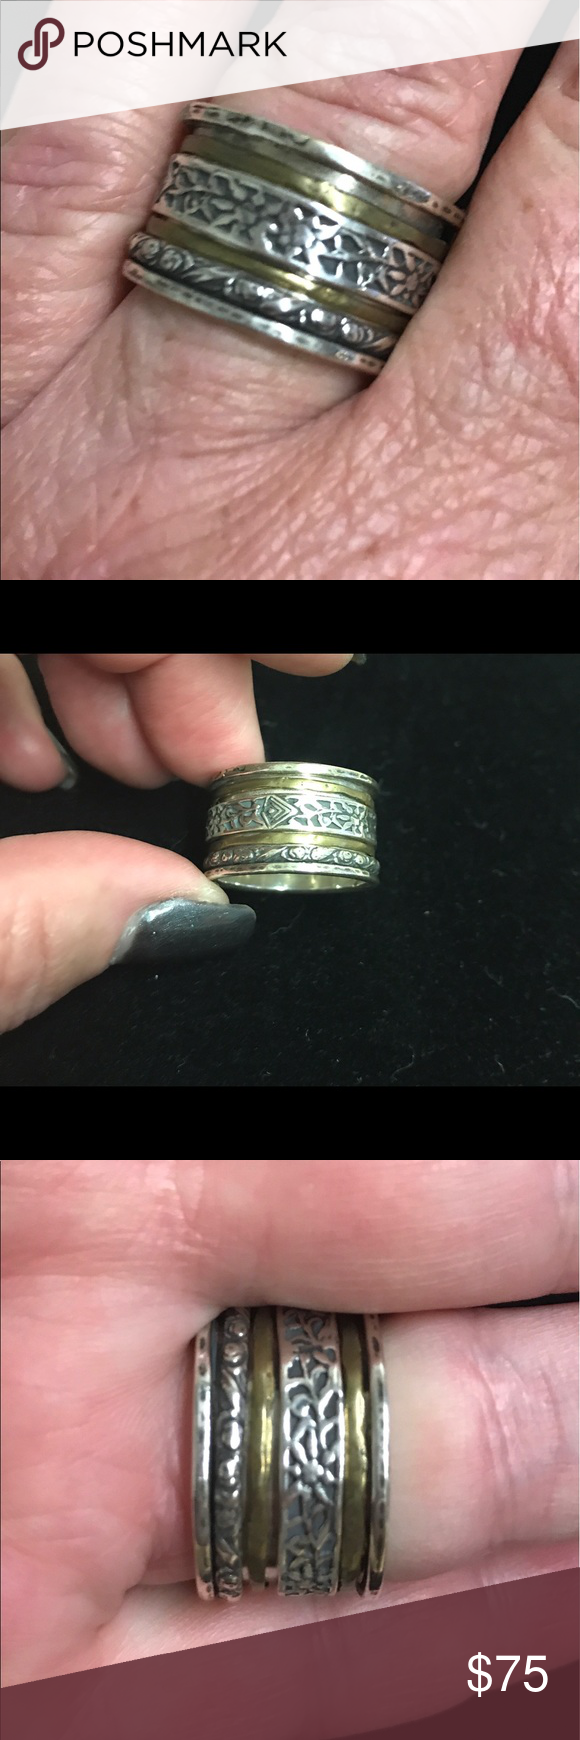 Reduced to sell! Silpada chunky ring, size 10 | Silpada jewelry ...